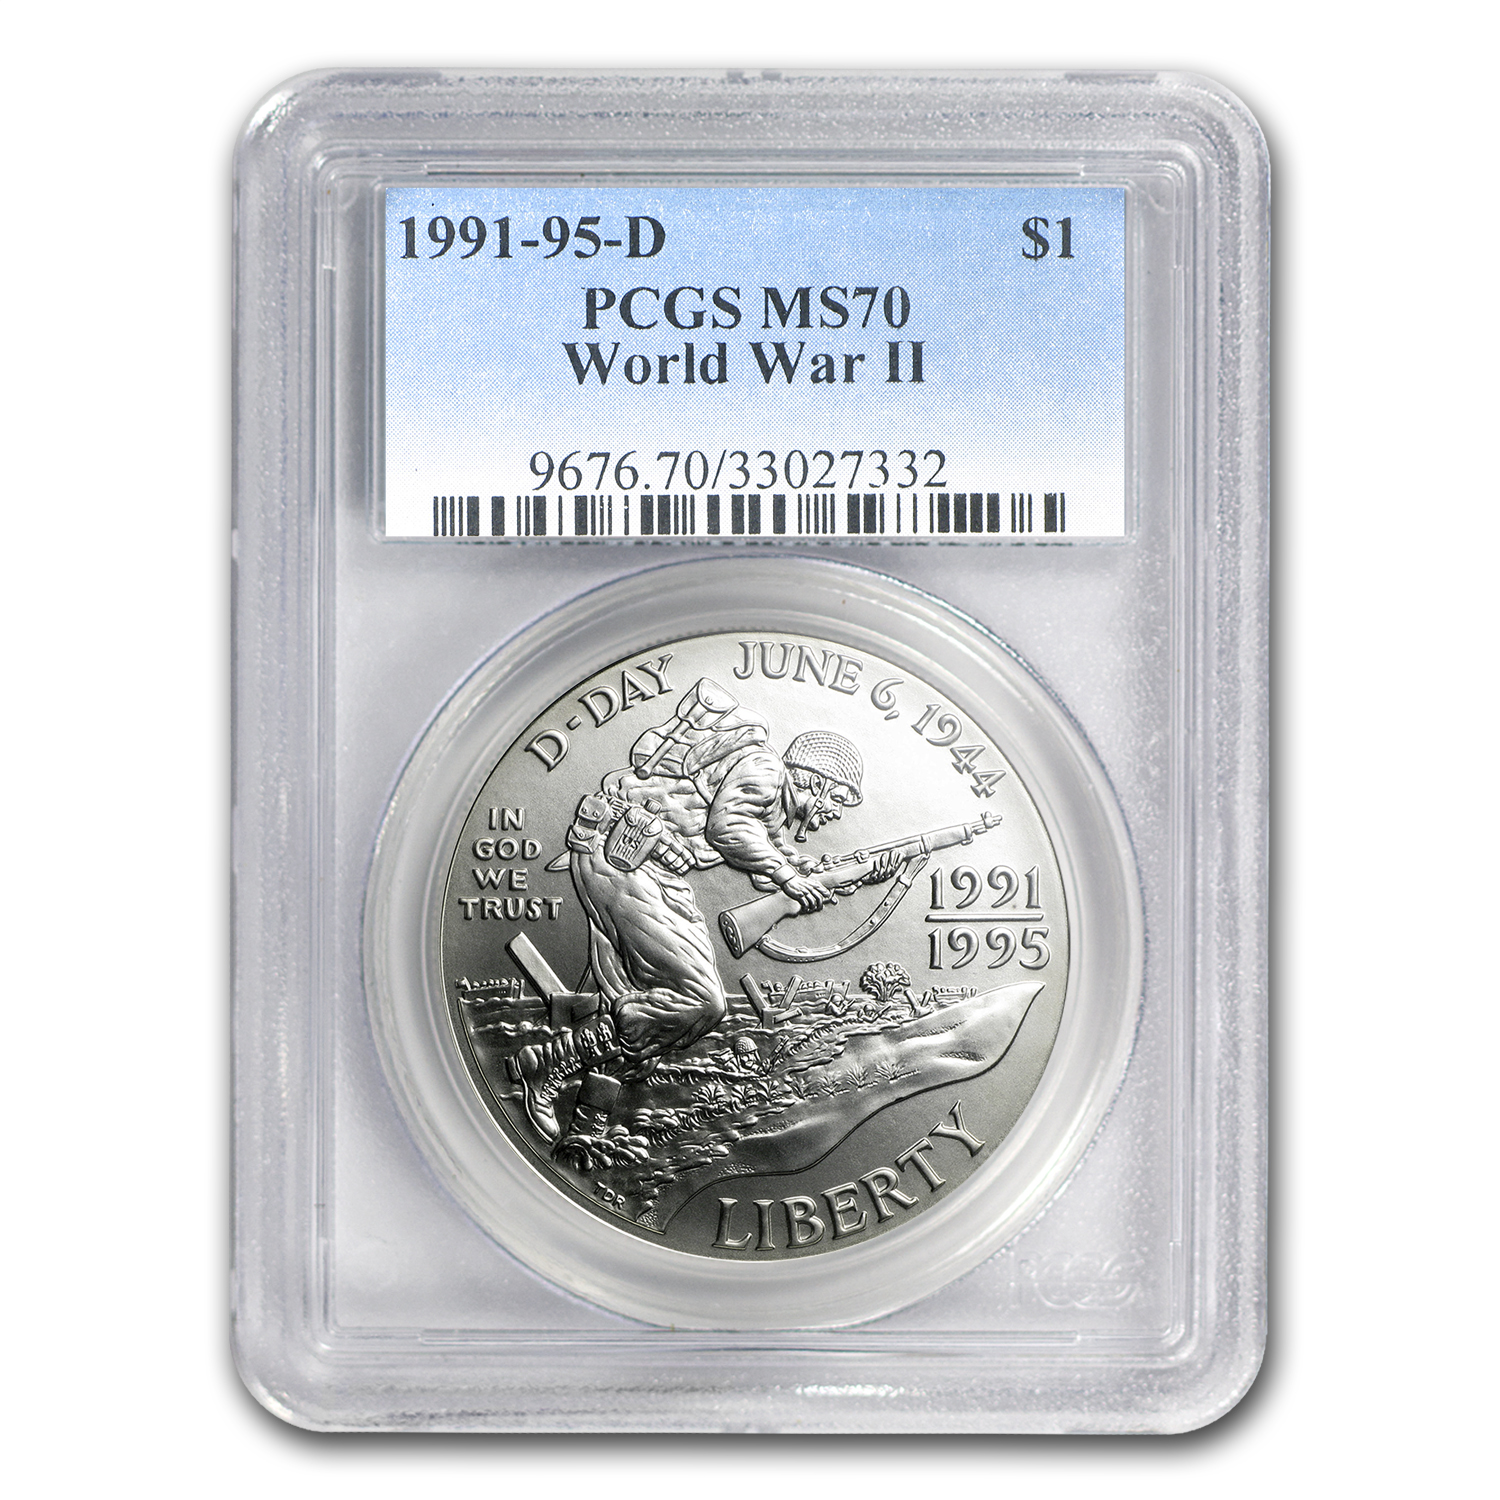 1991-1995-D World War II $1 Silver Commem MS-70 PCGS